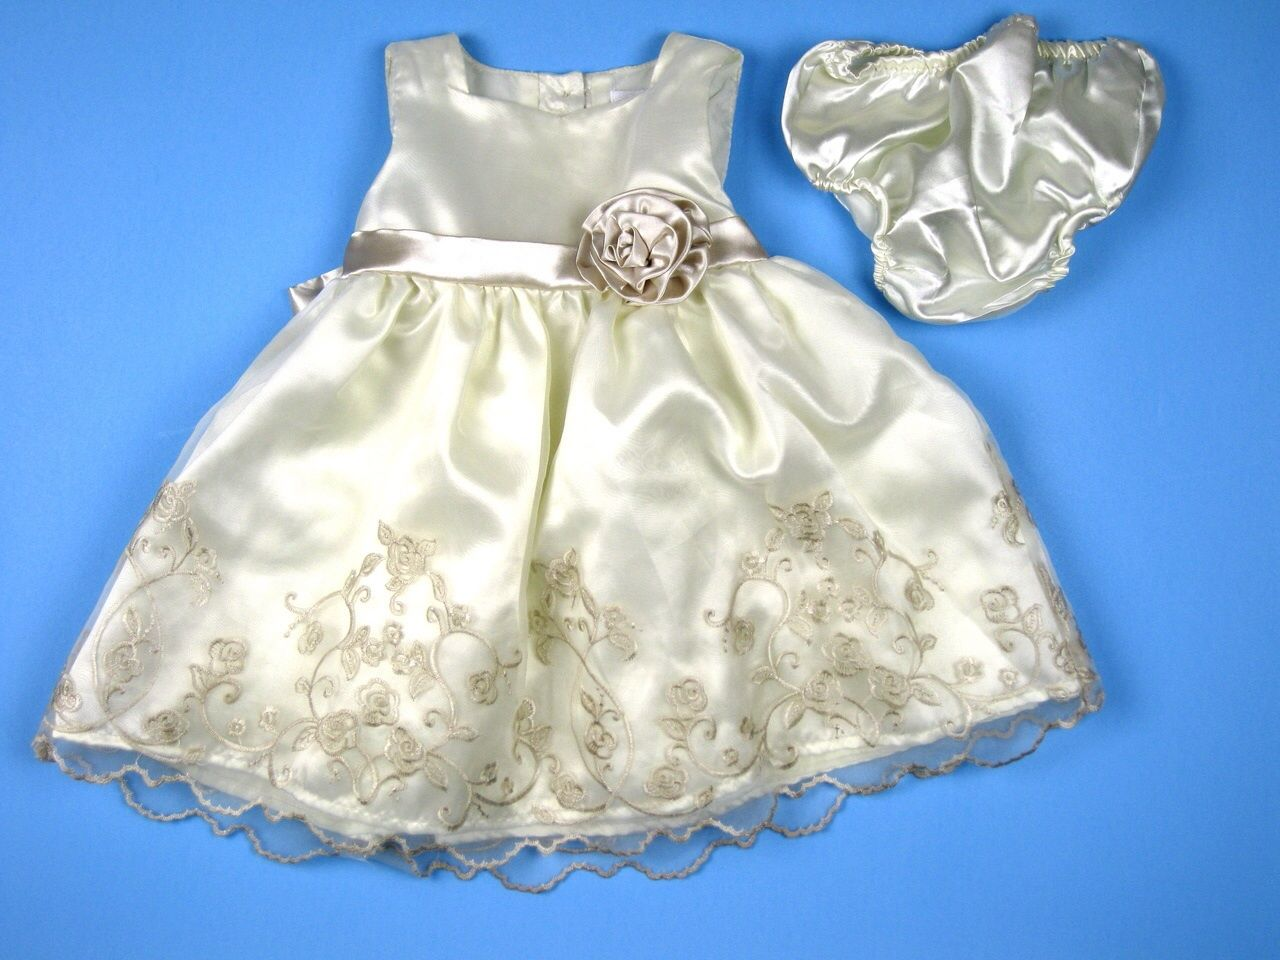 Fancy Dress 6 9 Months 12 00 Awesome Pre Loved Girls Clothes